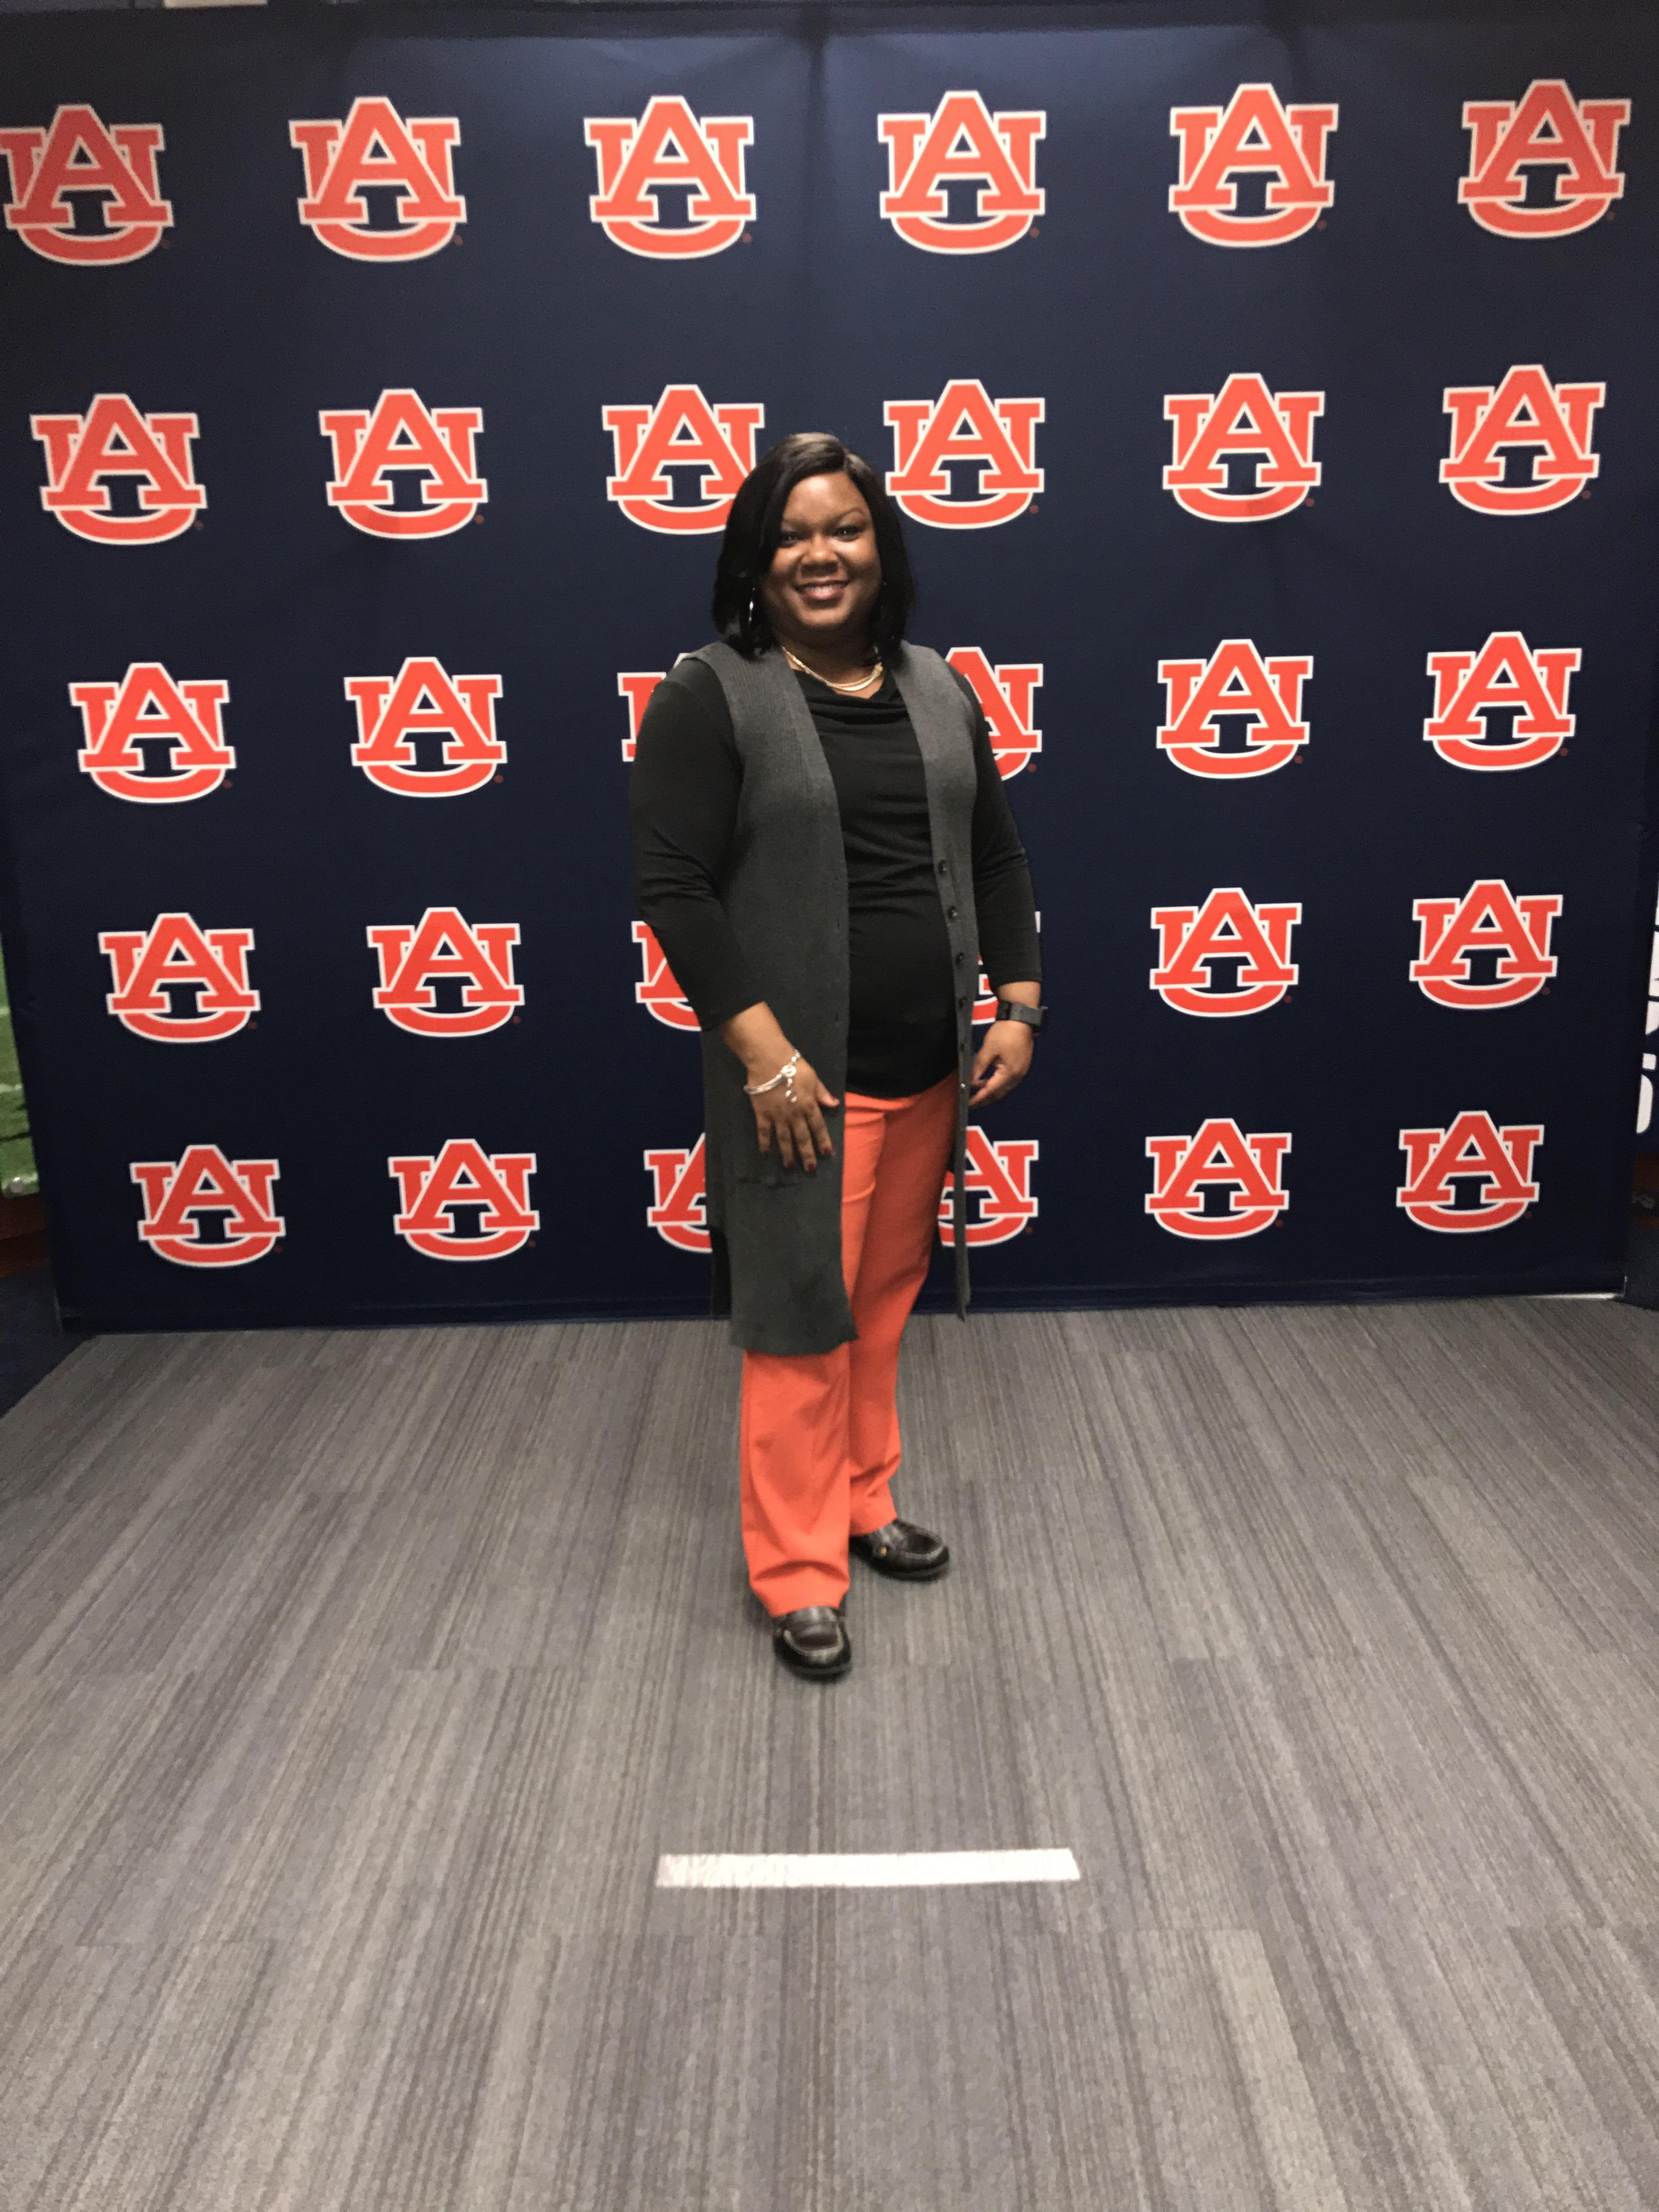 Hillman poses at Auburn this past year.